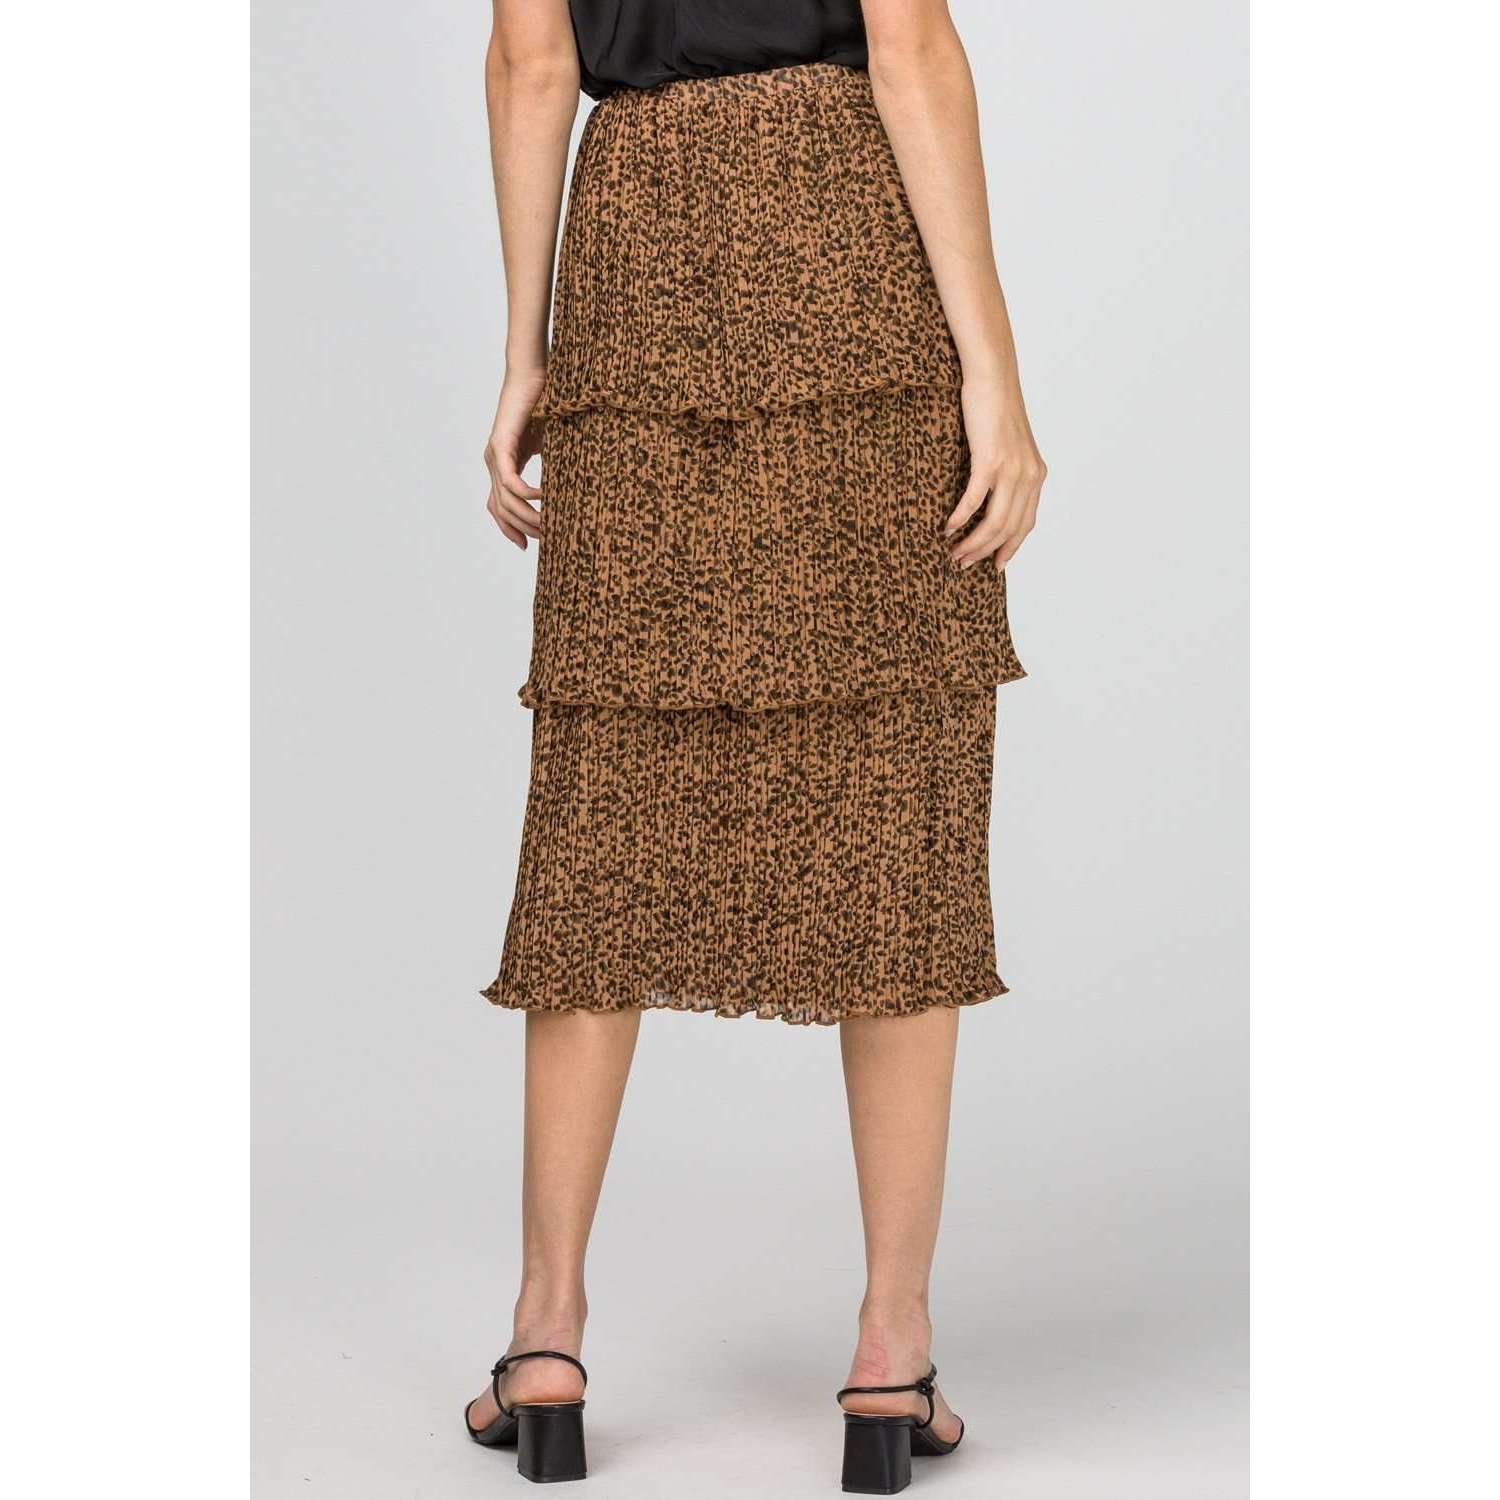 8.28 Boutique:8.28 Boutique,Entro Cheetah Tiered Skirt,Bottoms